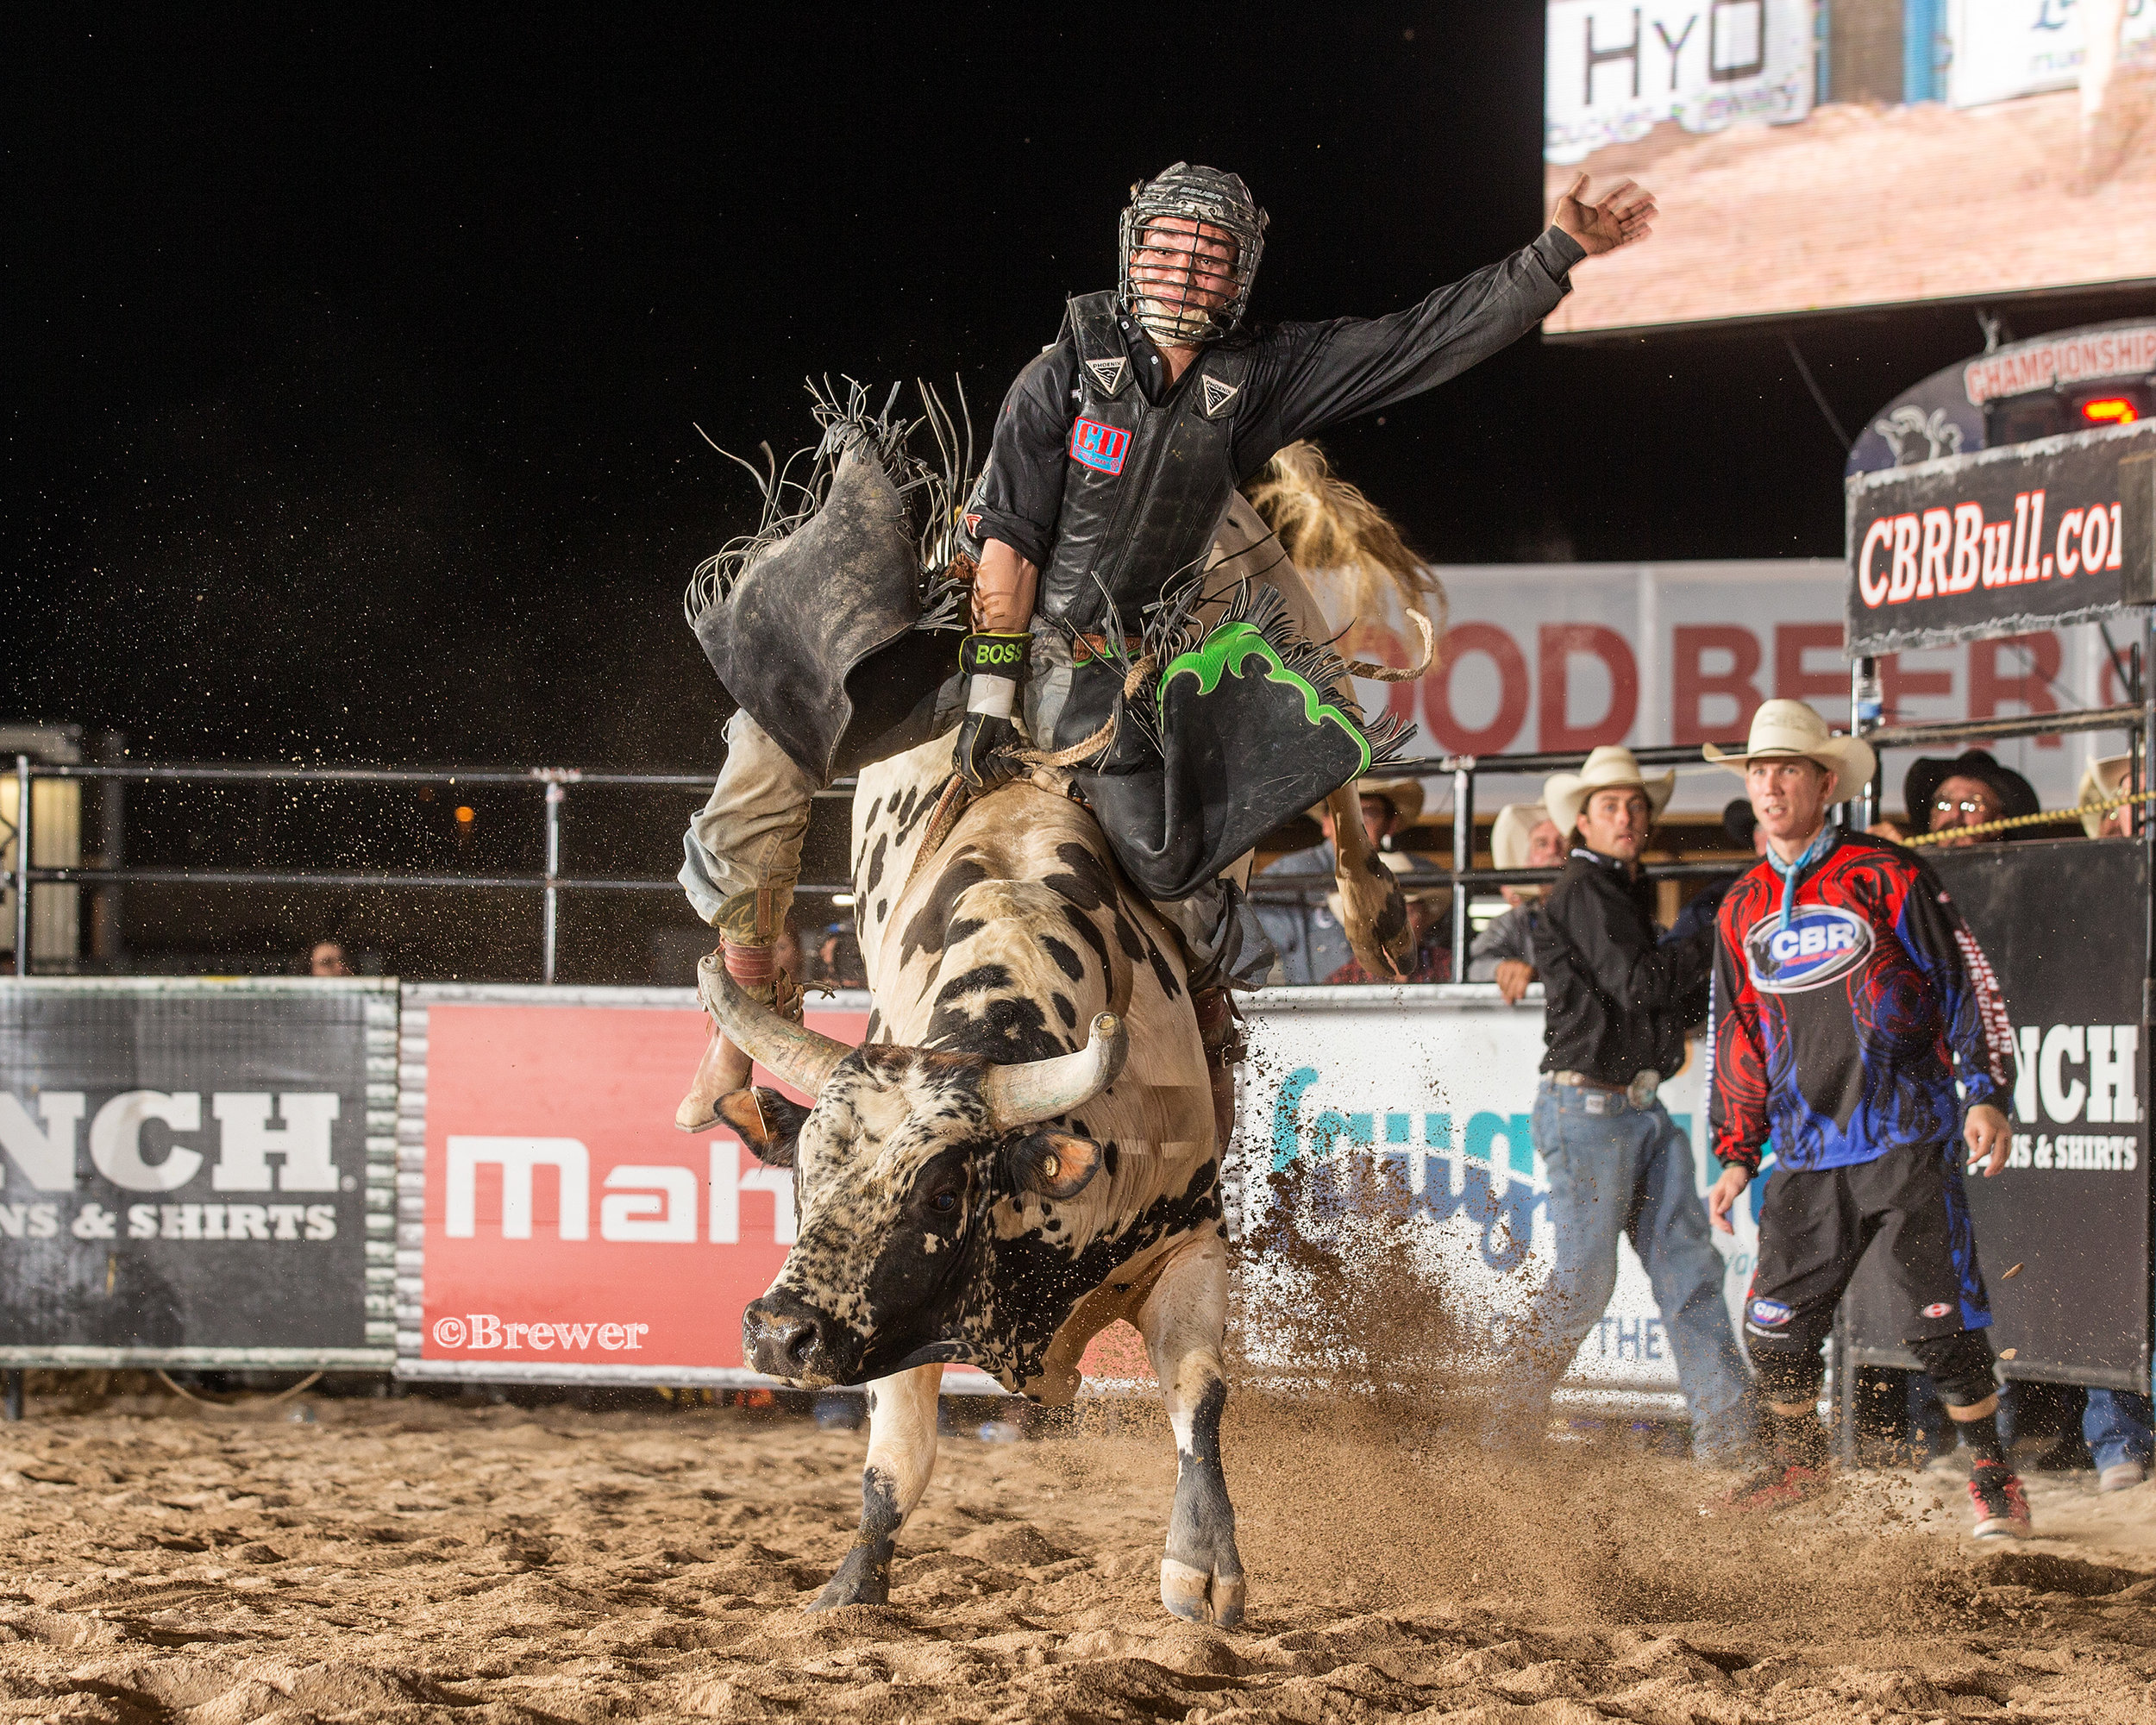 Cody Rostockyj won and lost money on a bull he feuded with frequently - J908 Outside the Box.